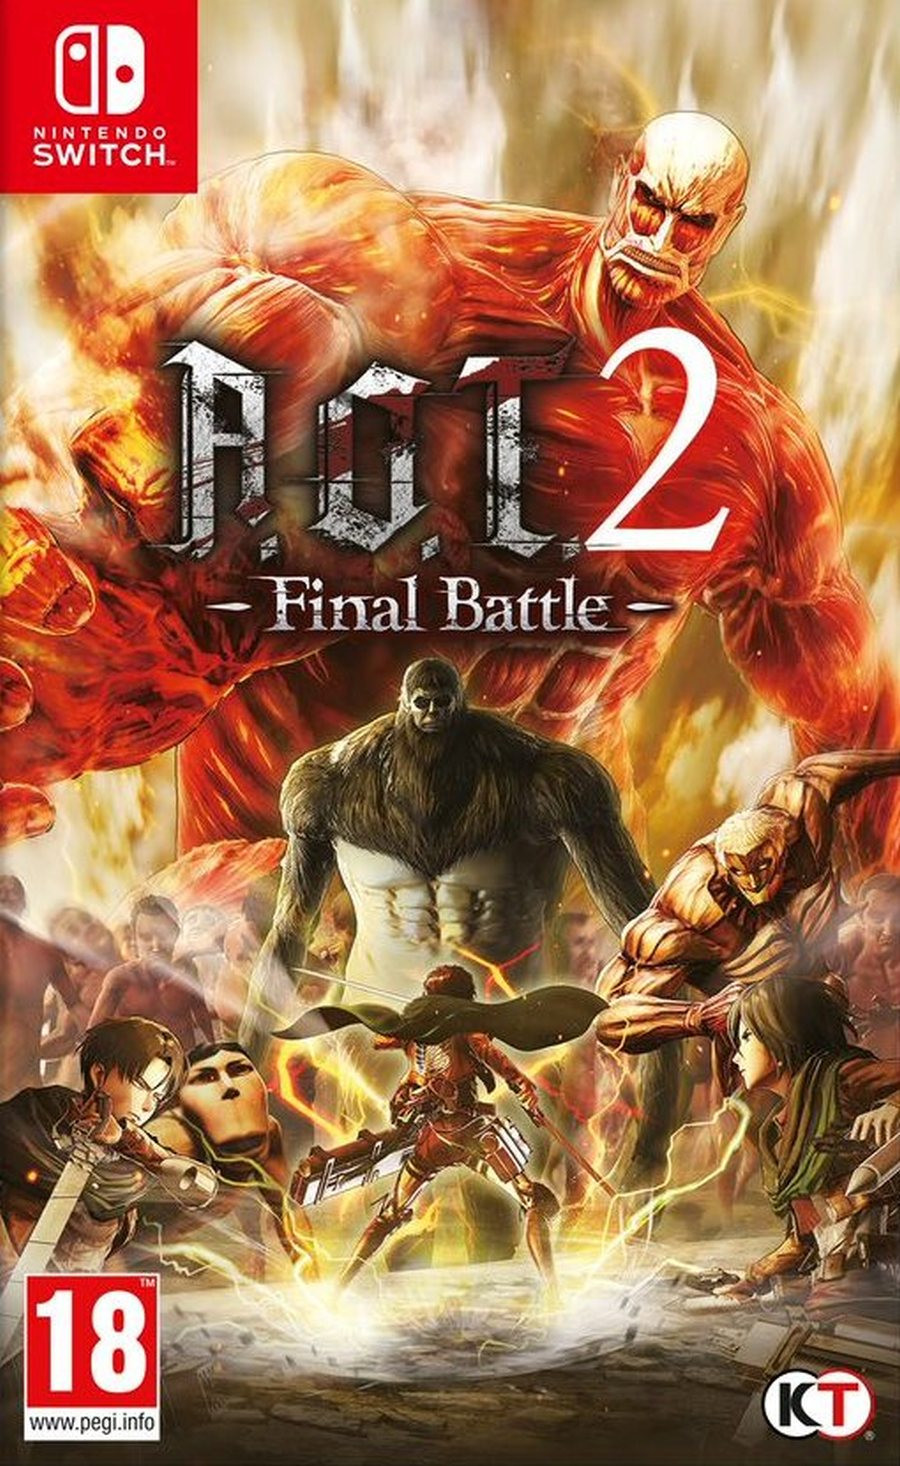 SWITCH Attack on Titan 2 (AOT 2) Final Battle